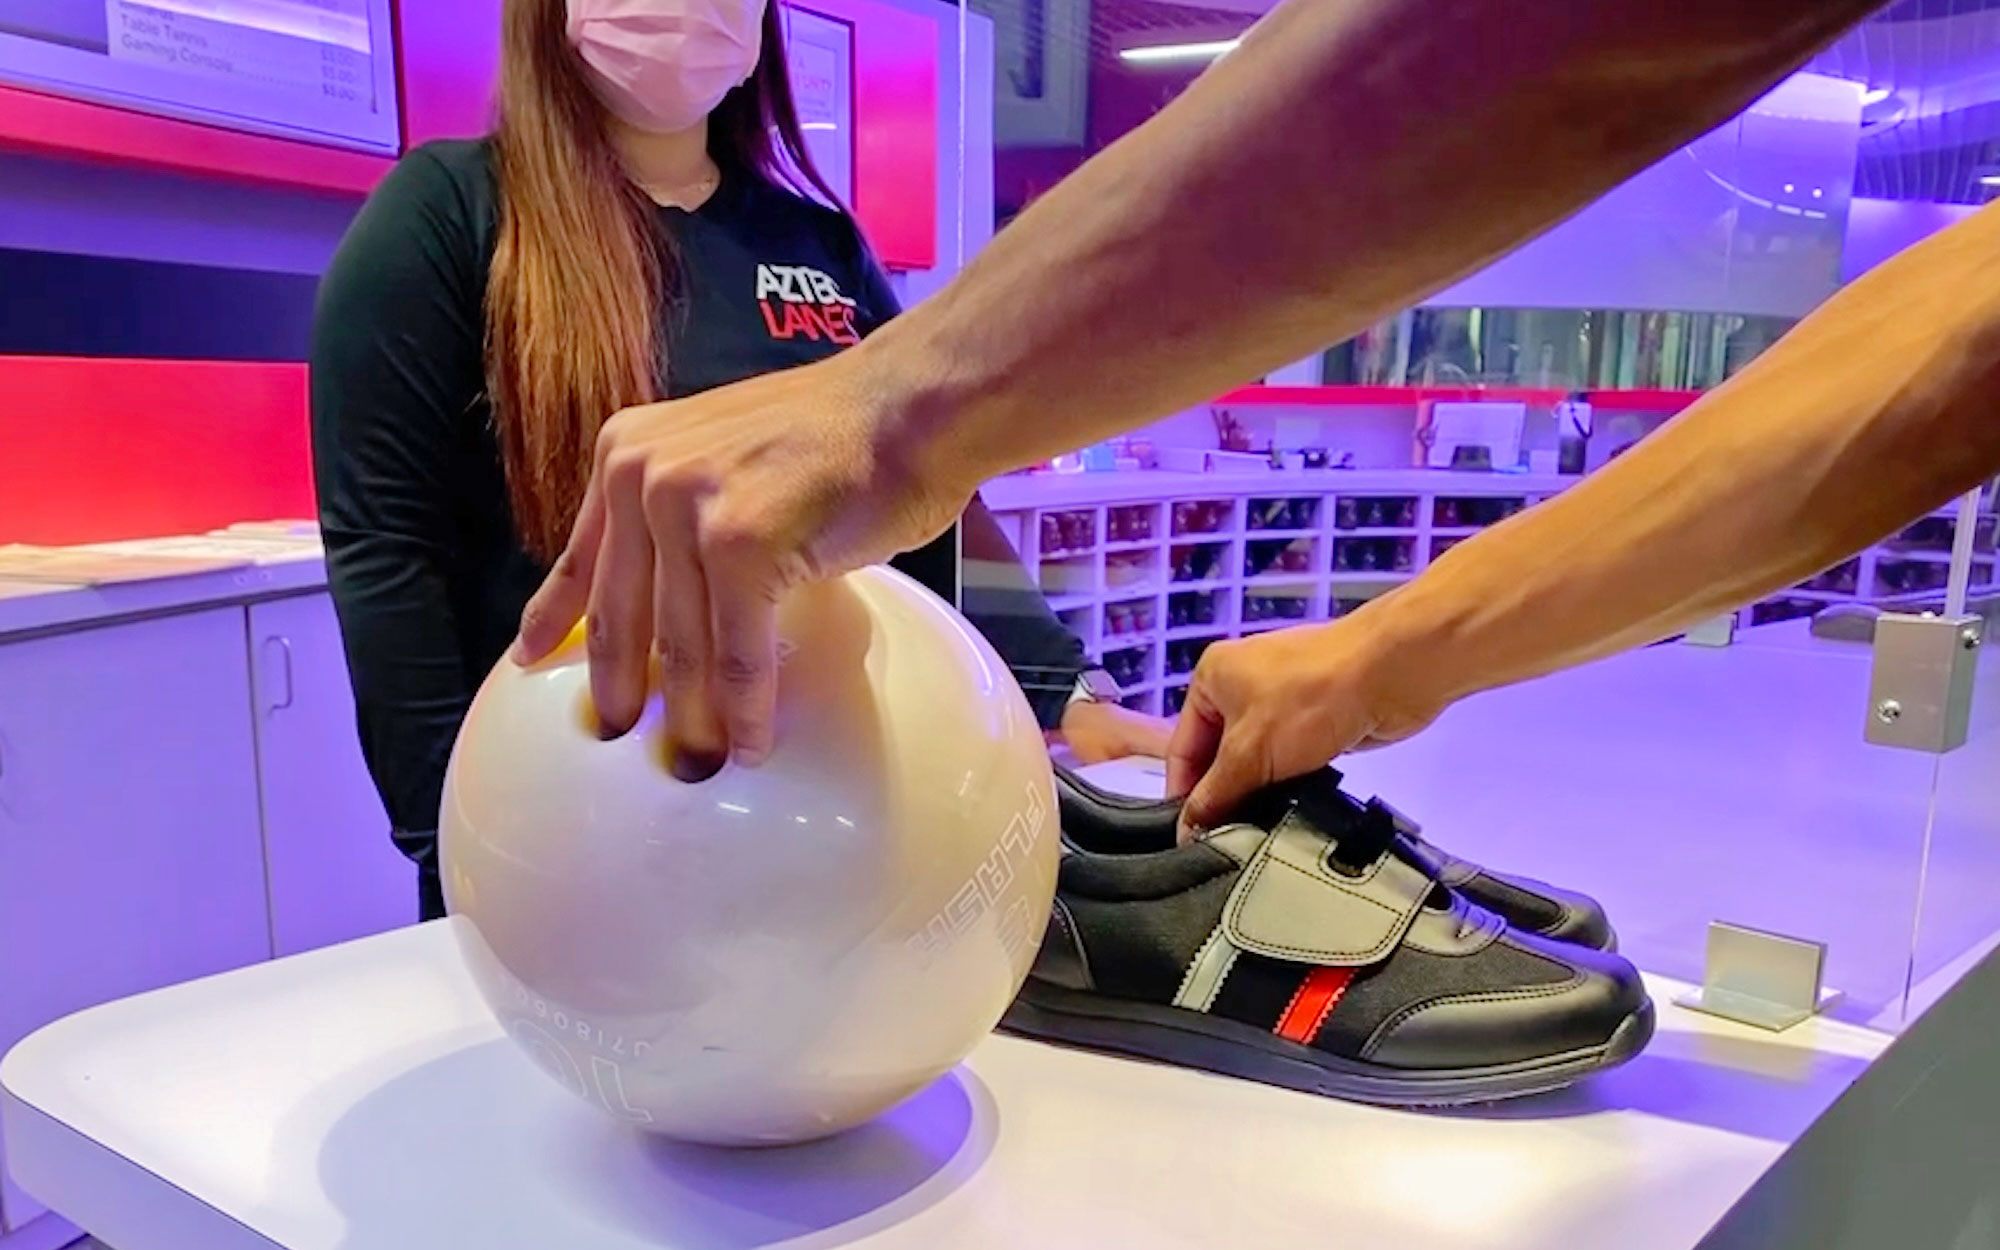 Picking up a bowling ball and shoes from front desk